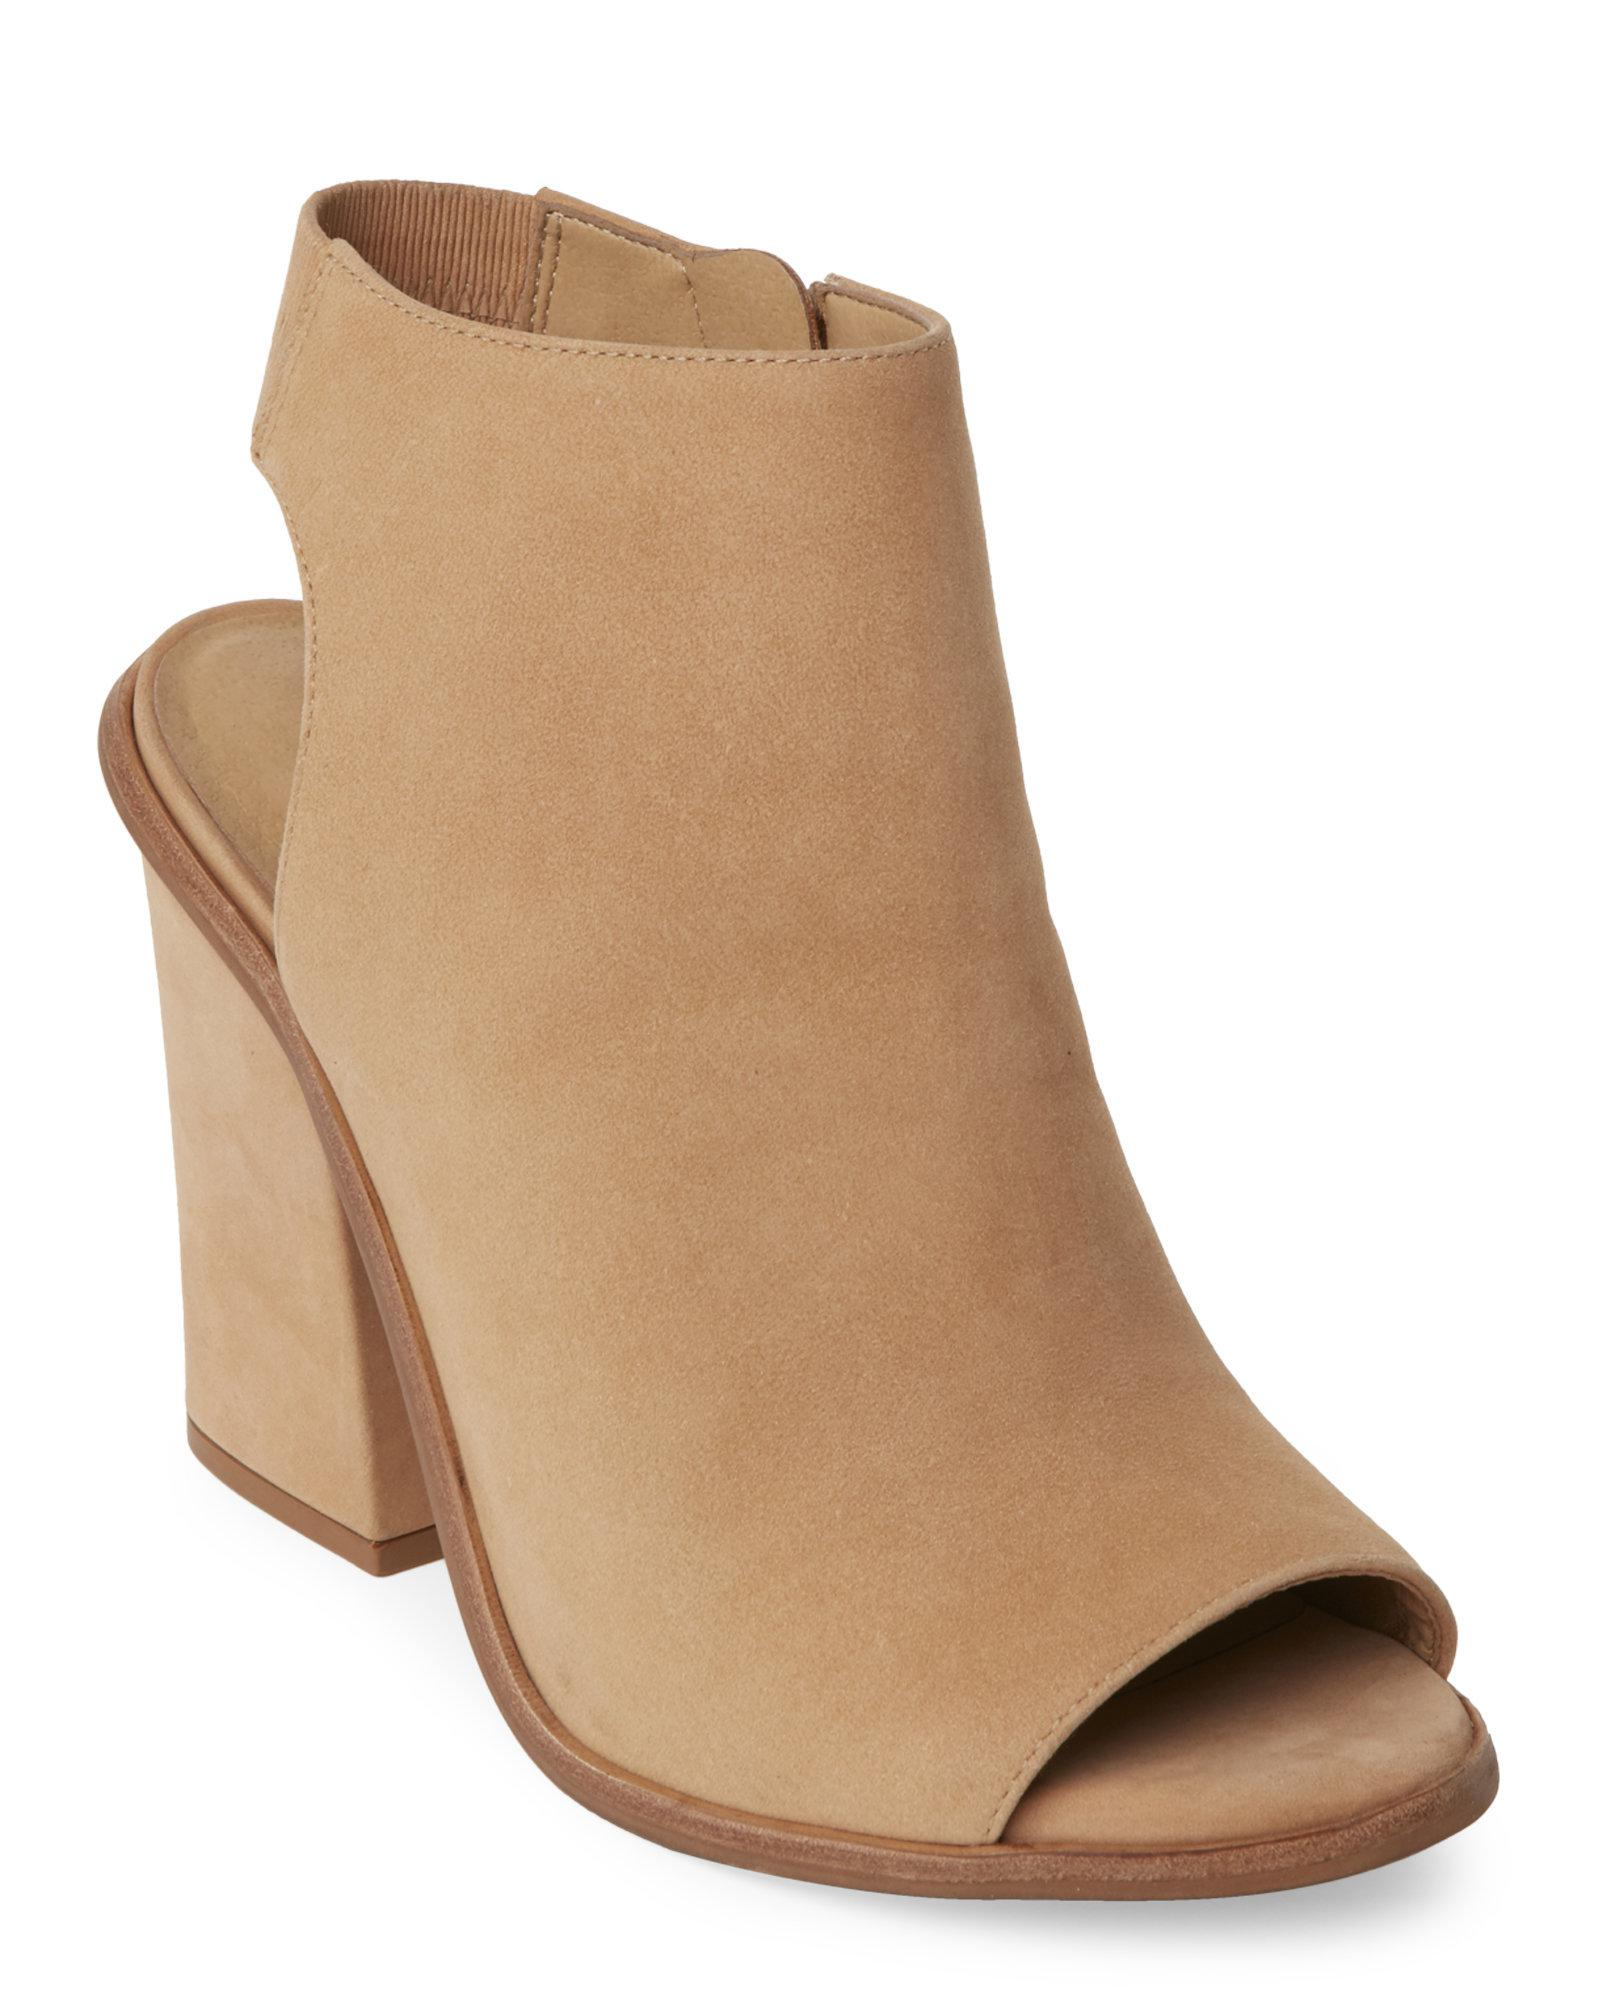 5957aad600c Lyst - Steve Madden Natural Valencia Peep Toe Cutout Booties in Natural